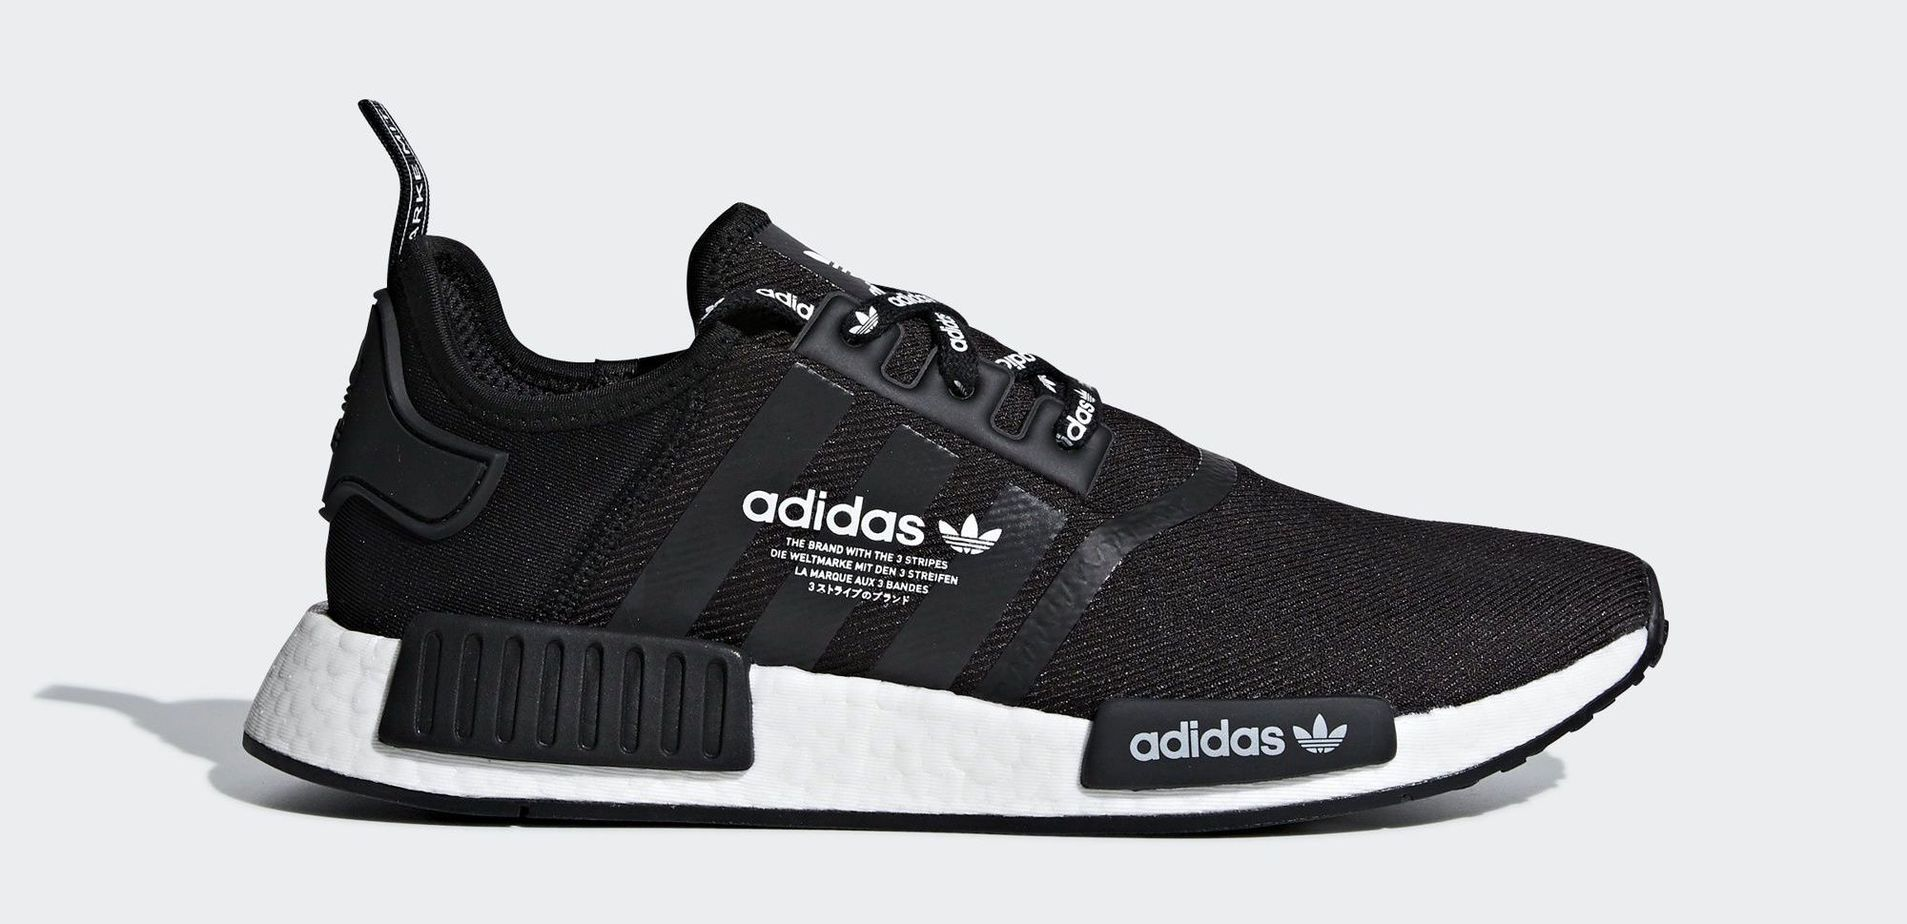 54379890deaf42 adidas nmd uk release